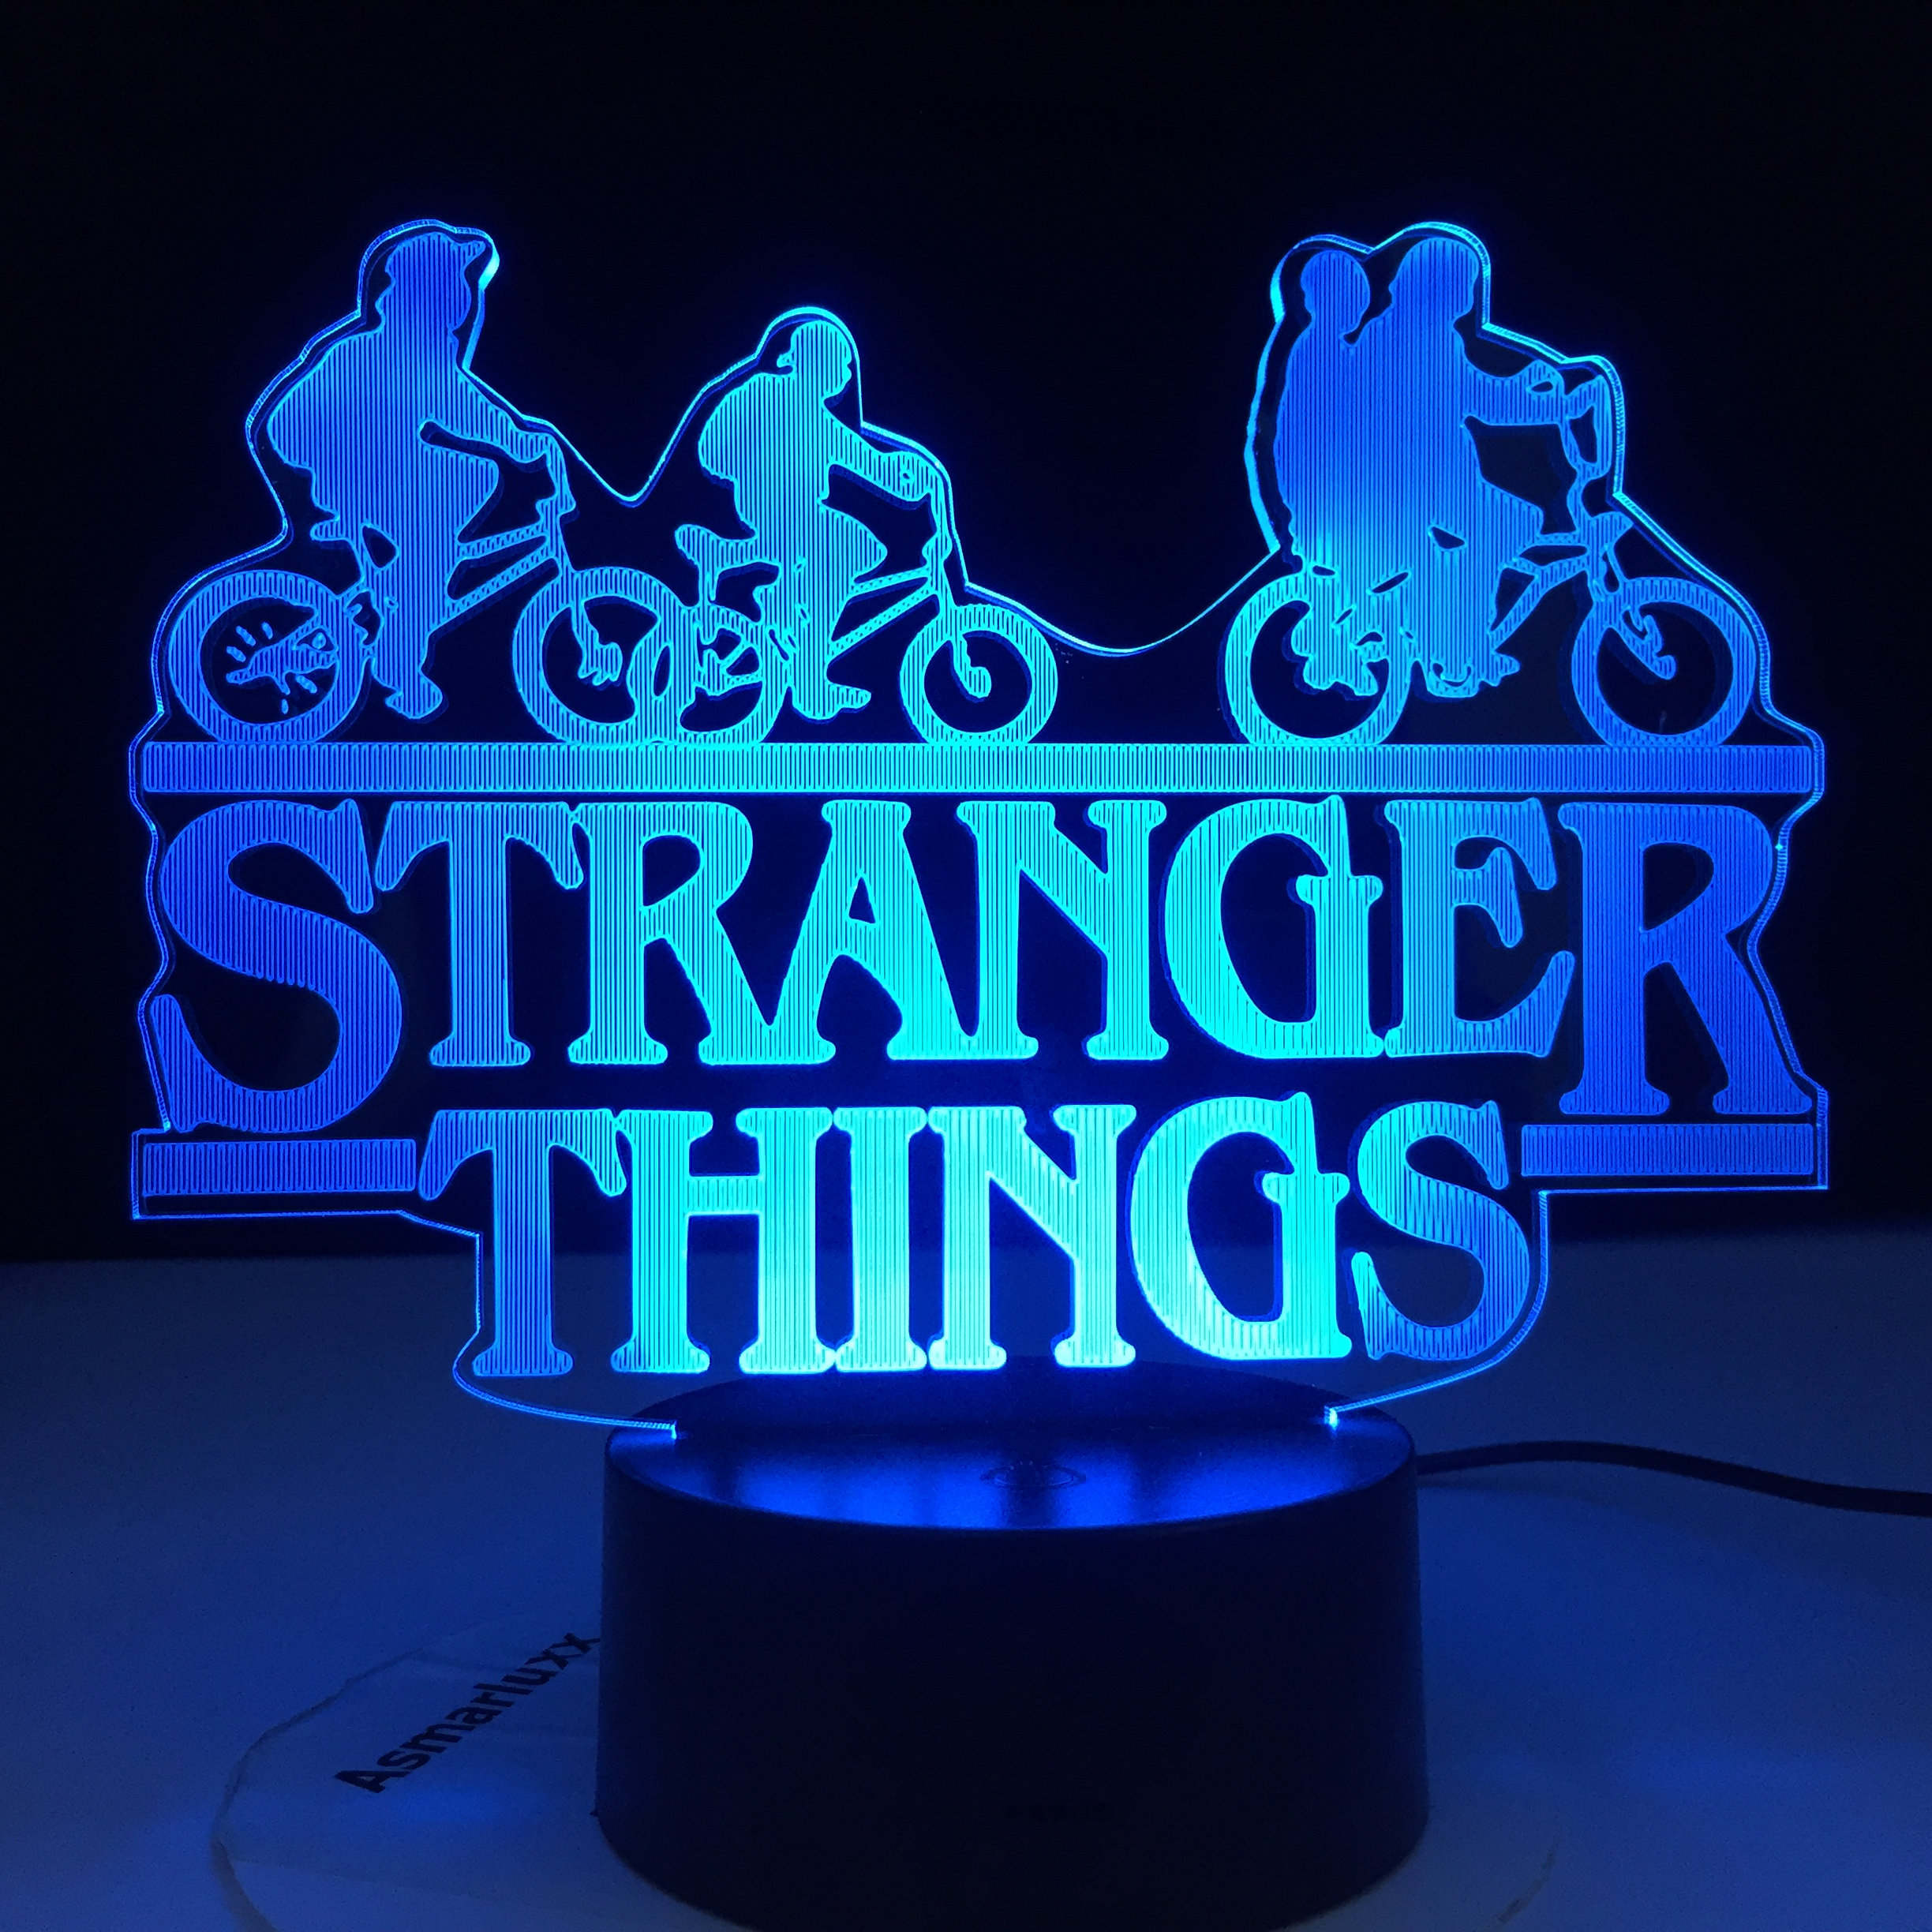 Stranger Things American Web TV Series Led Night Light 7 Colors Changing Touch Sensor Bedroom Nightlight Table Lamp Best Gift image